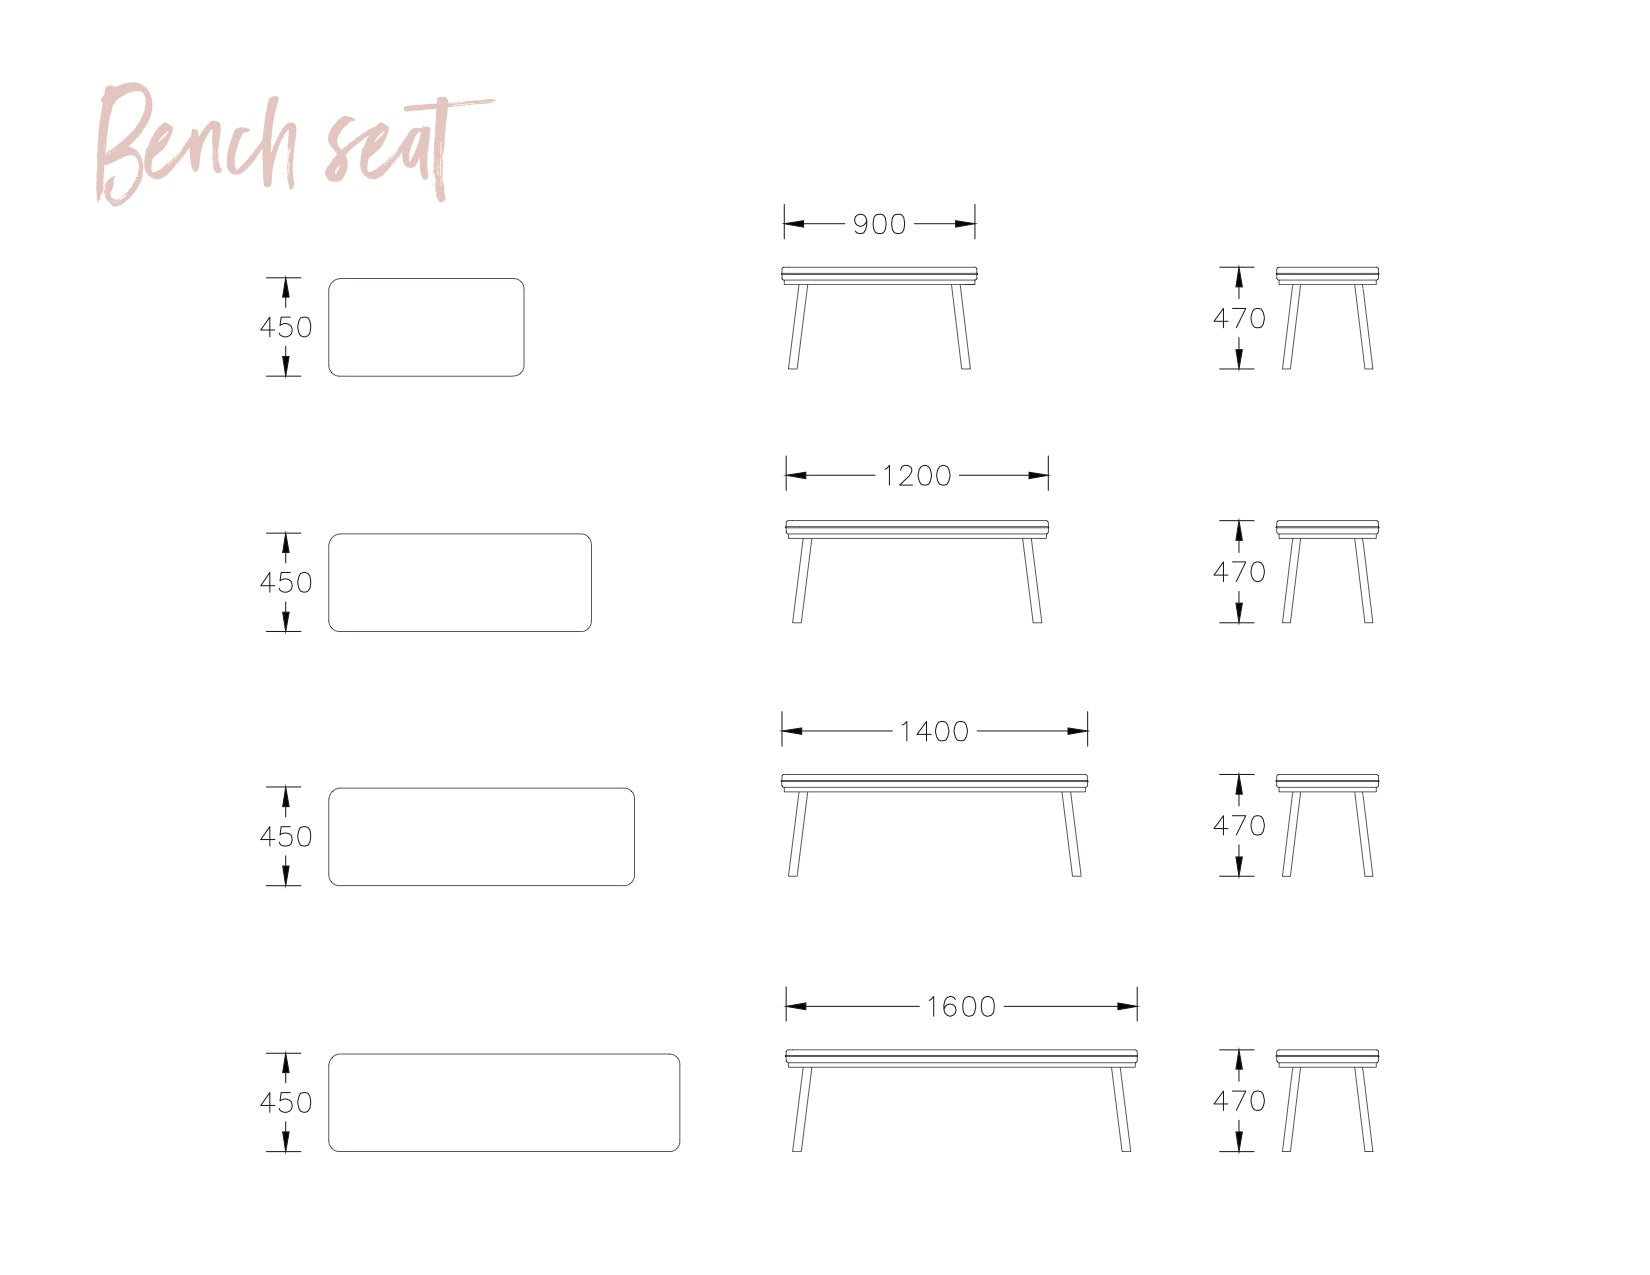 norsu Bench Seat - Design your own (4522763616340)